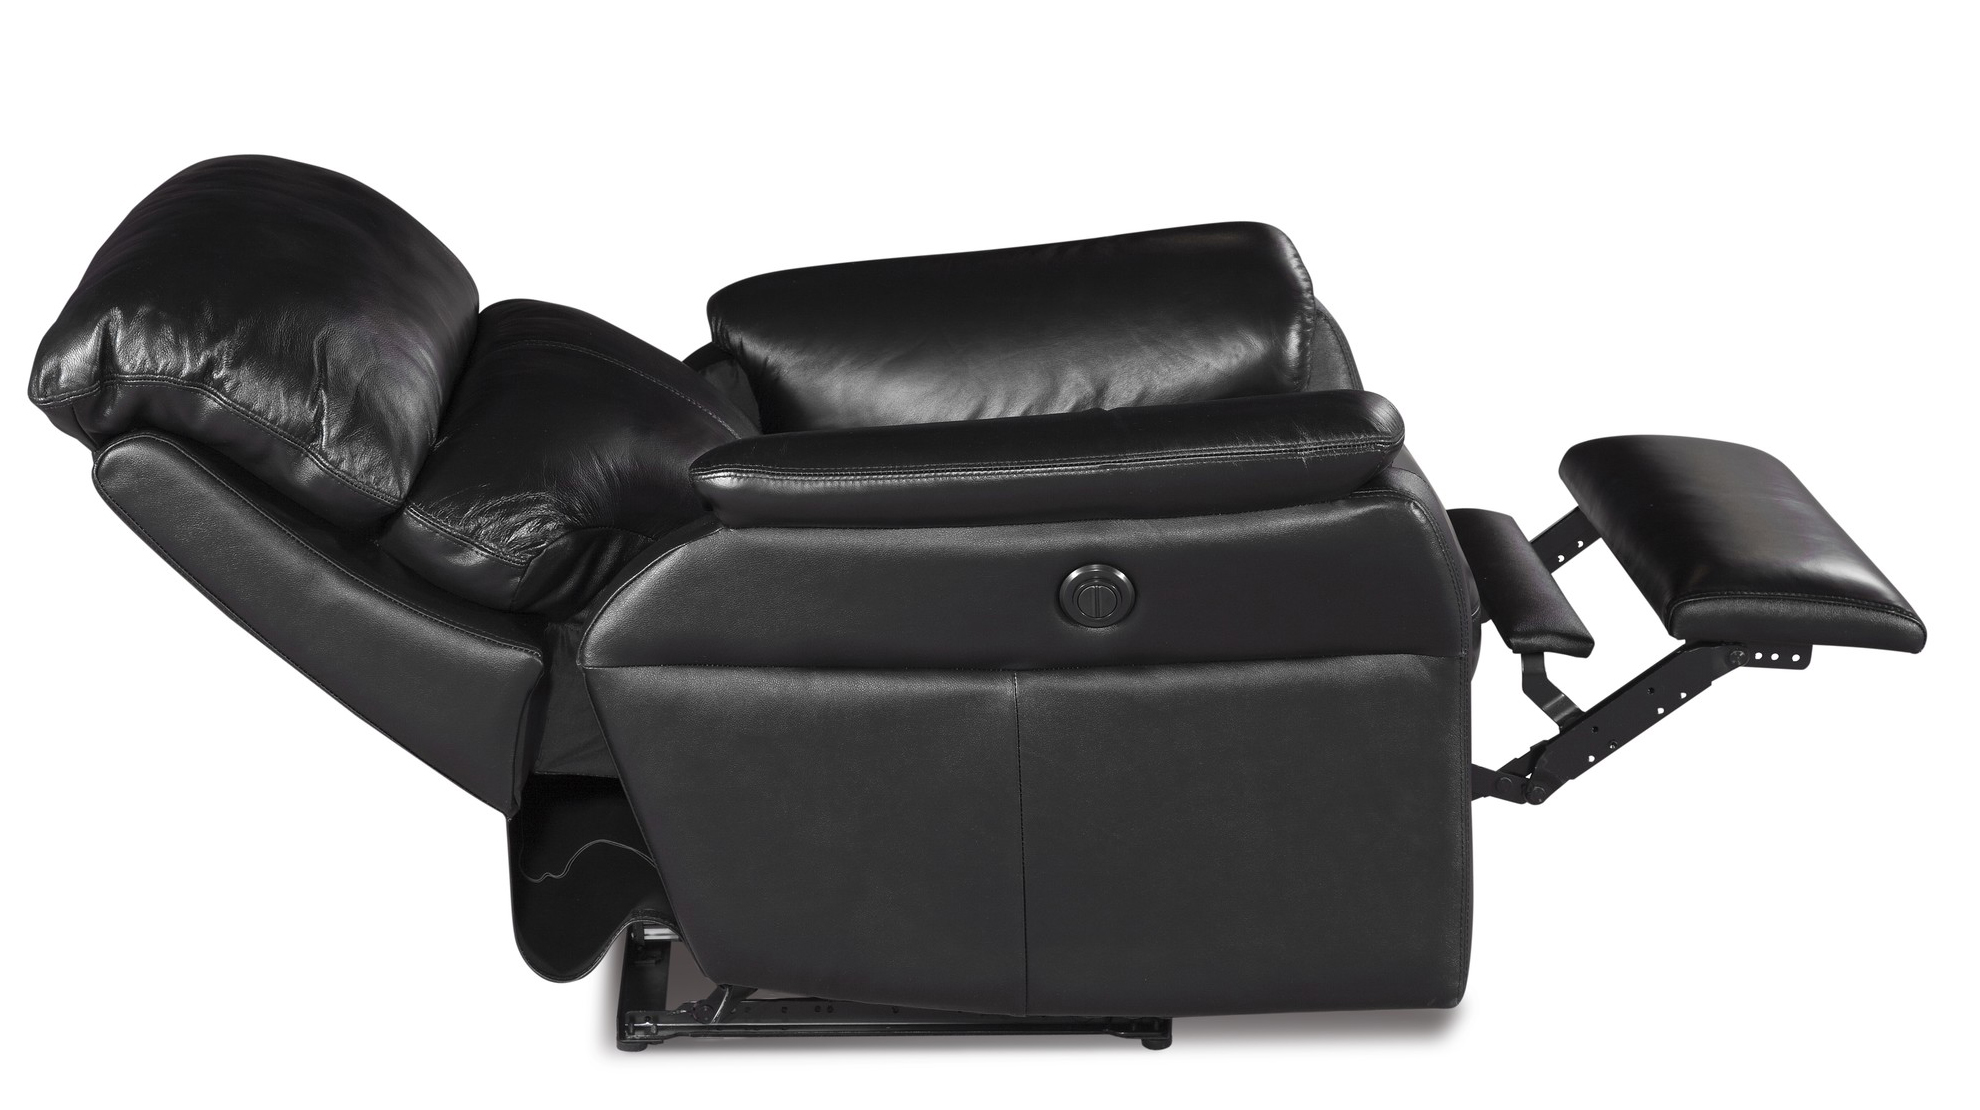 Barcalounger Recliner Cross II Chair Reclined Power Tivoli Ebony Black Leather  sc 1 st  Vitalitywebb.com & Barcalounger Cross II Wall Proximity Hugger Lay Flat Recliner ... islam-shia.org